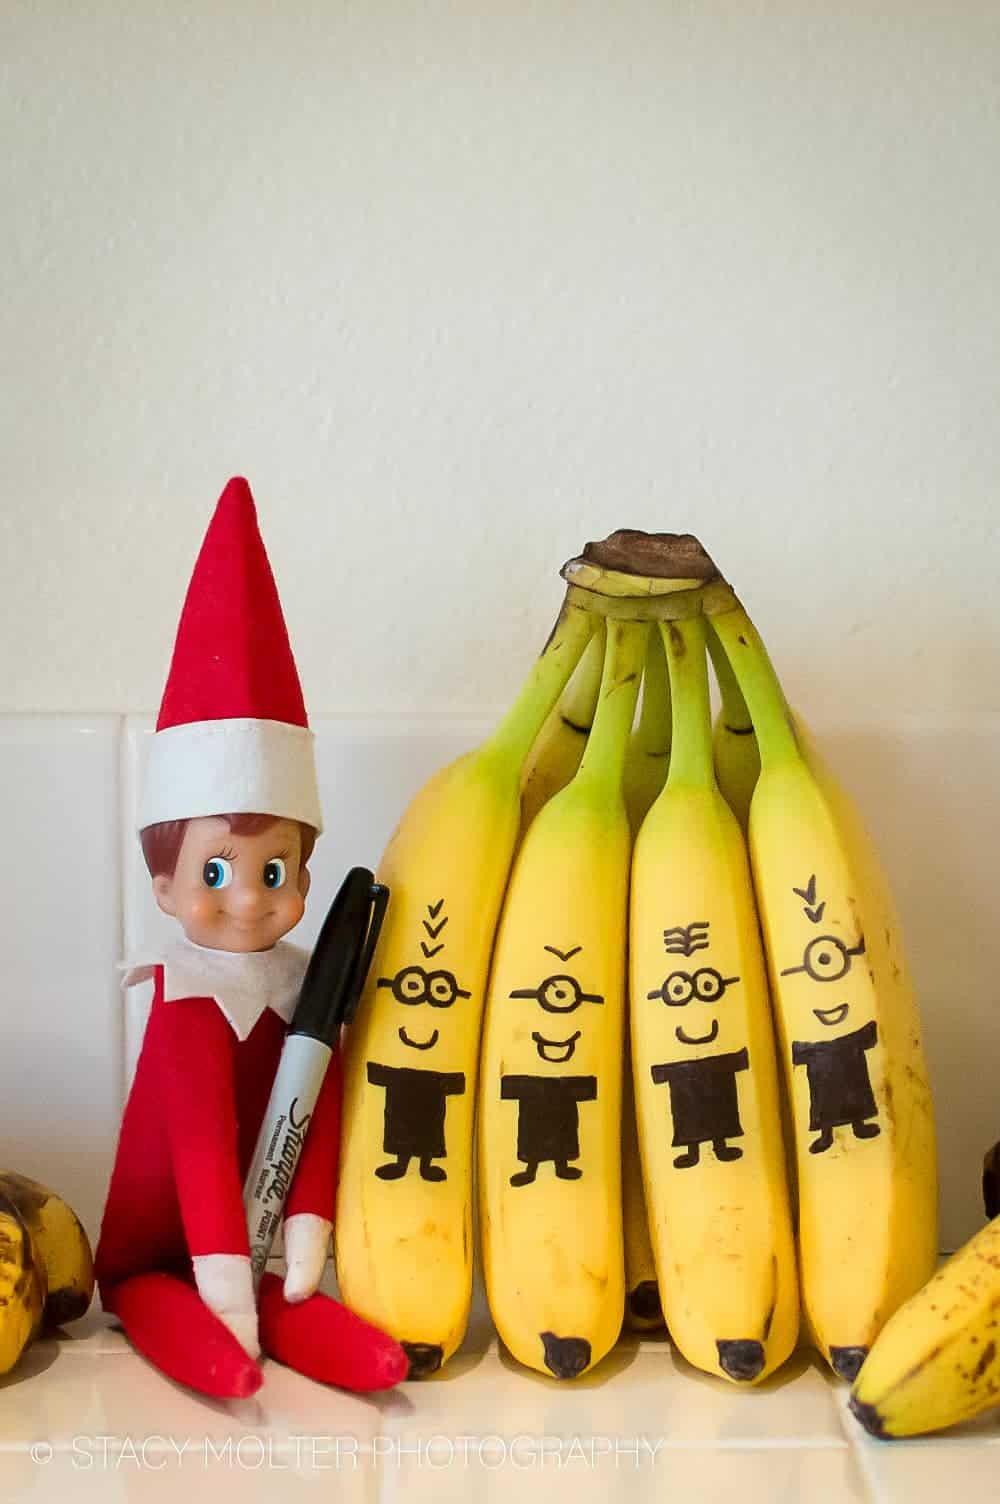 Elf on the shelf banana minions